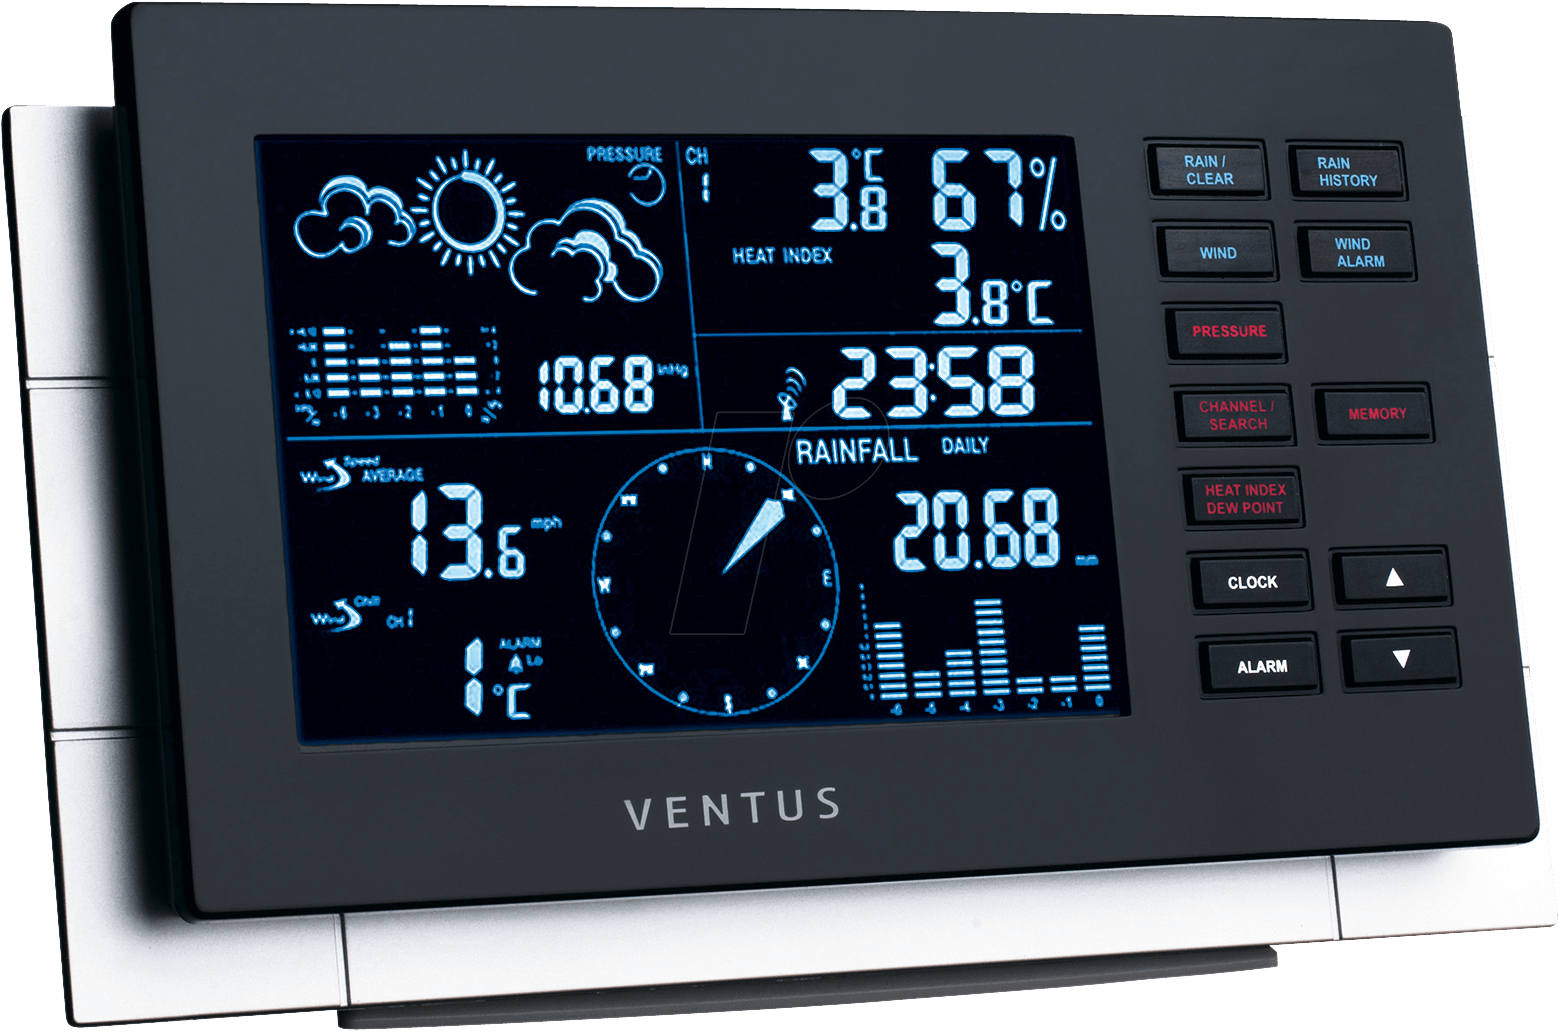 ventus w155 funk wetterstation bei reichelt elektronik. Black Bedroom Furniture Sets. Home Design Ideas